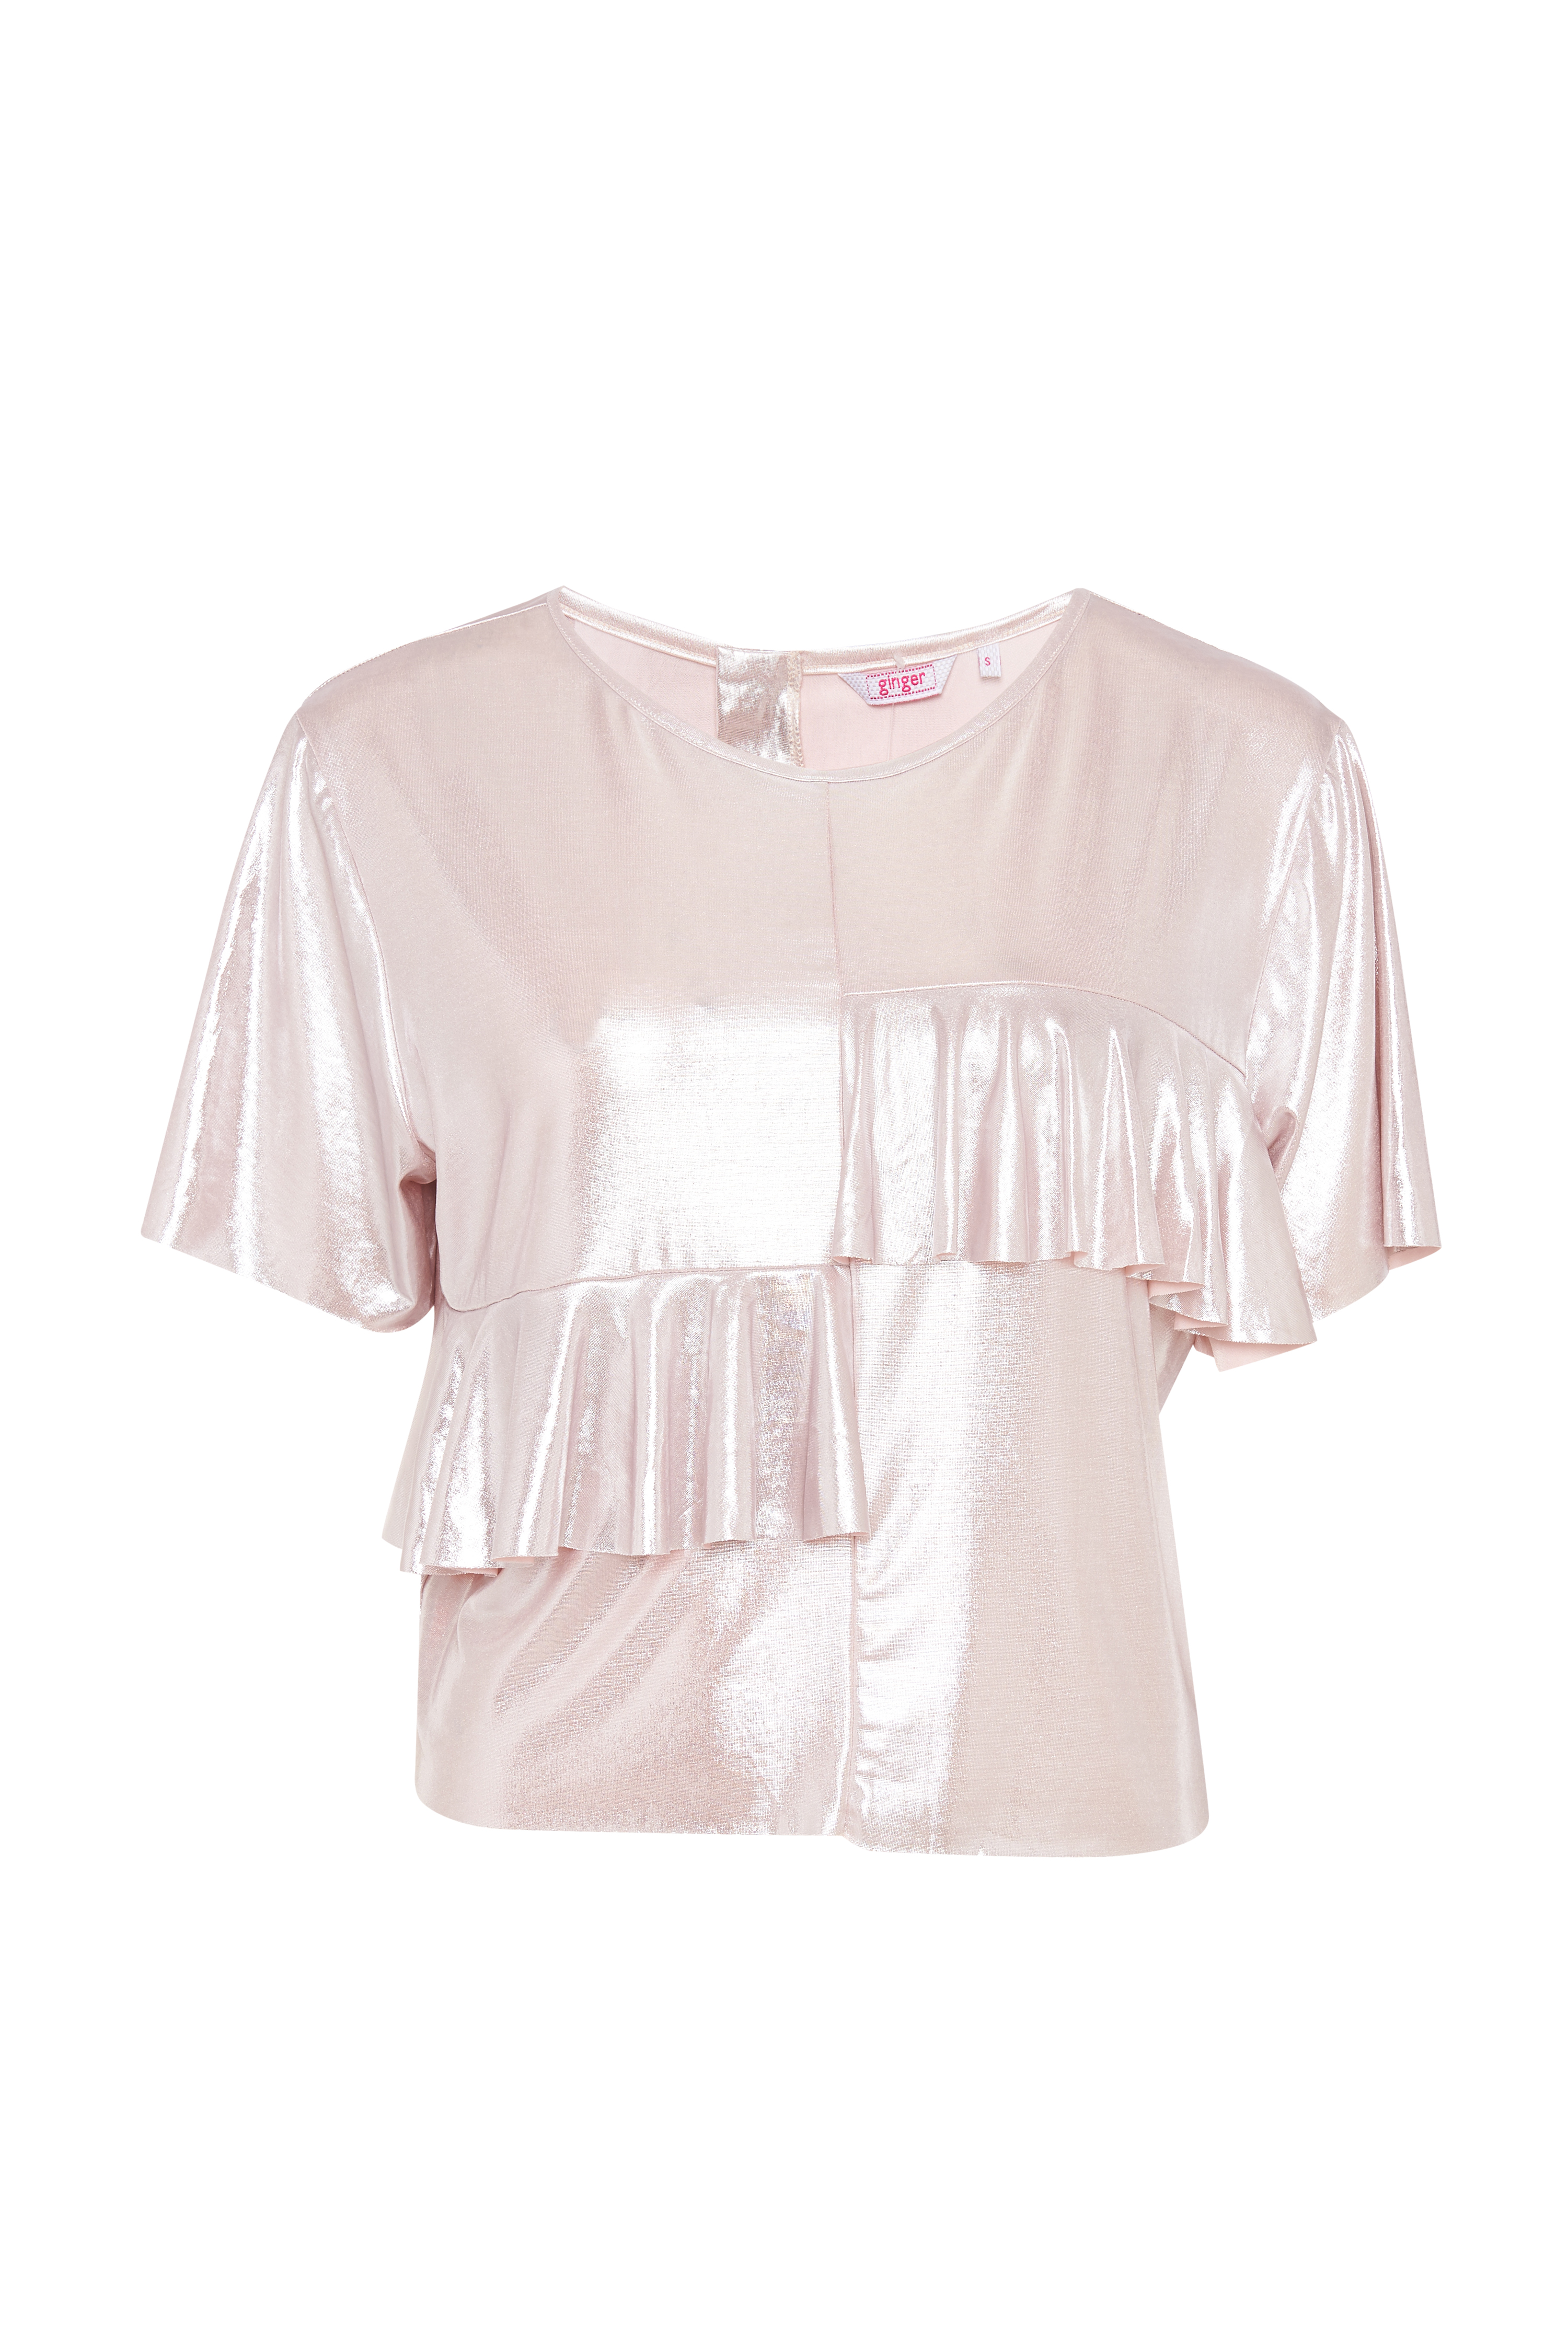 Top by Ginger by Lifestyle, Price on Request